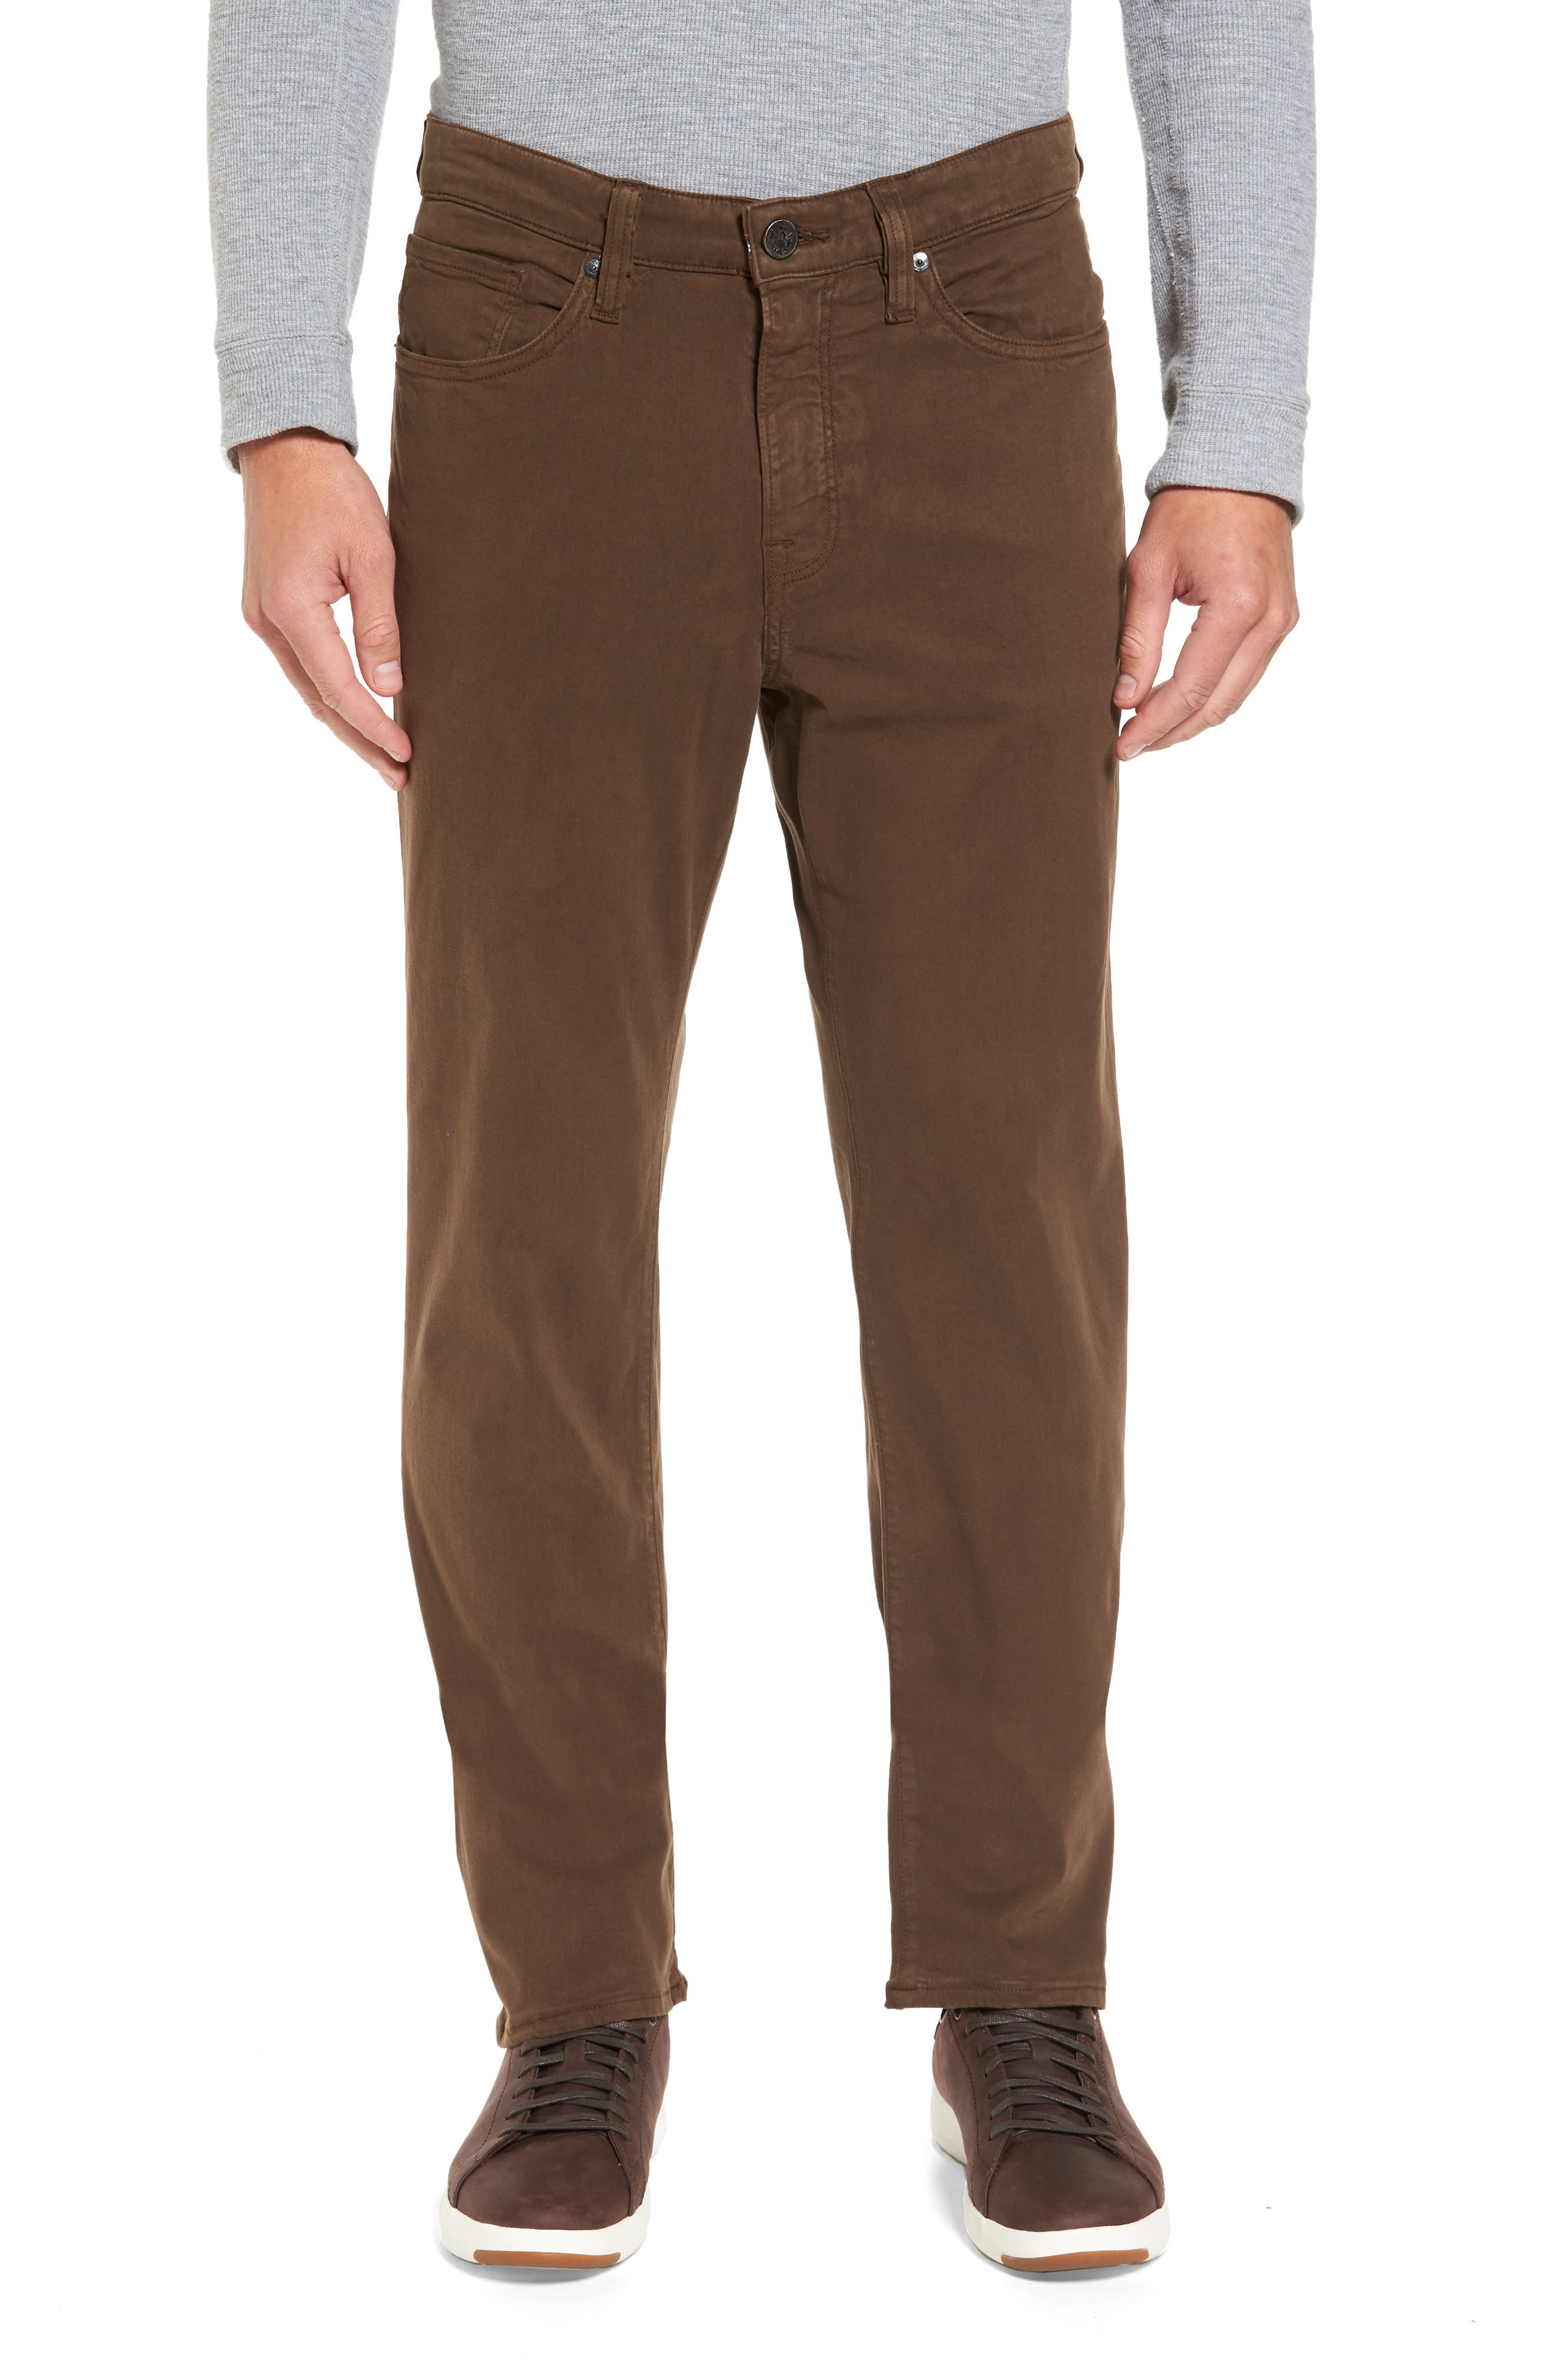 Charism Relaxed Fit Jeans,                         Main,                         color, Choco Twill